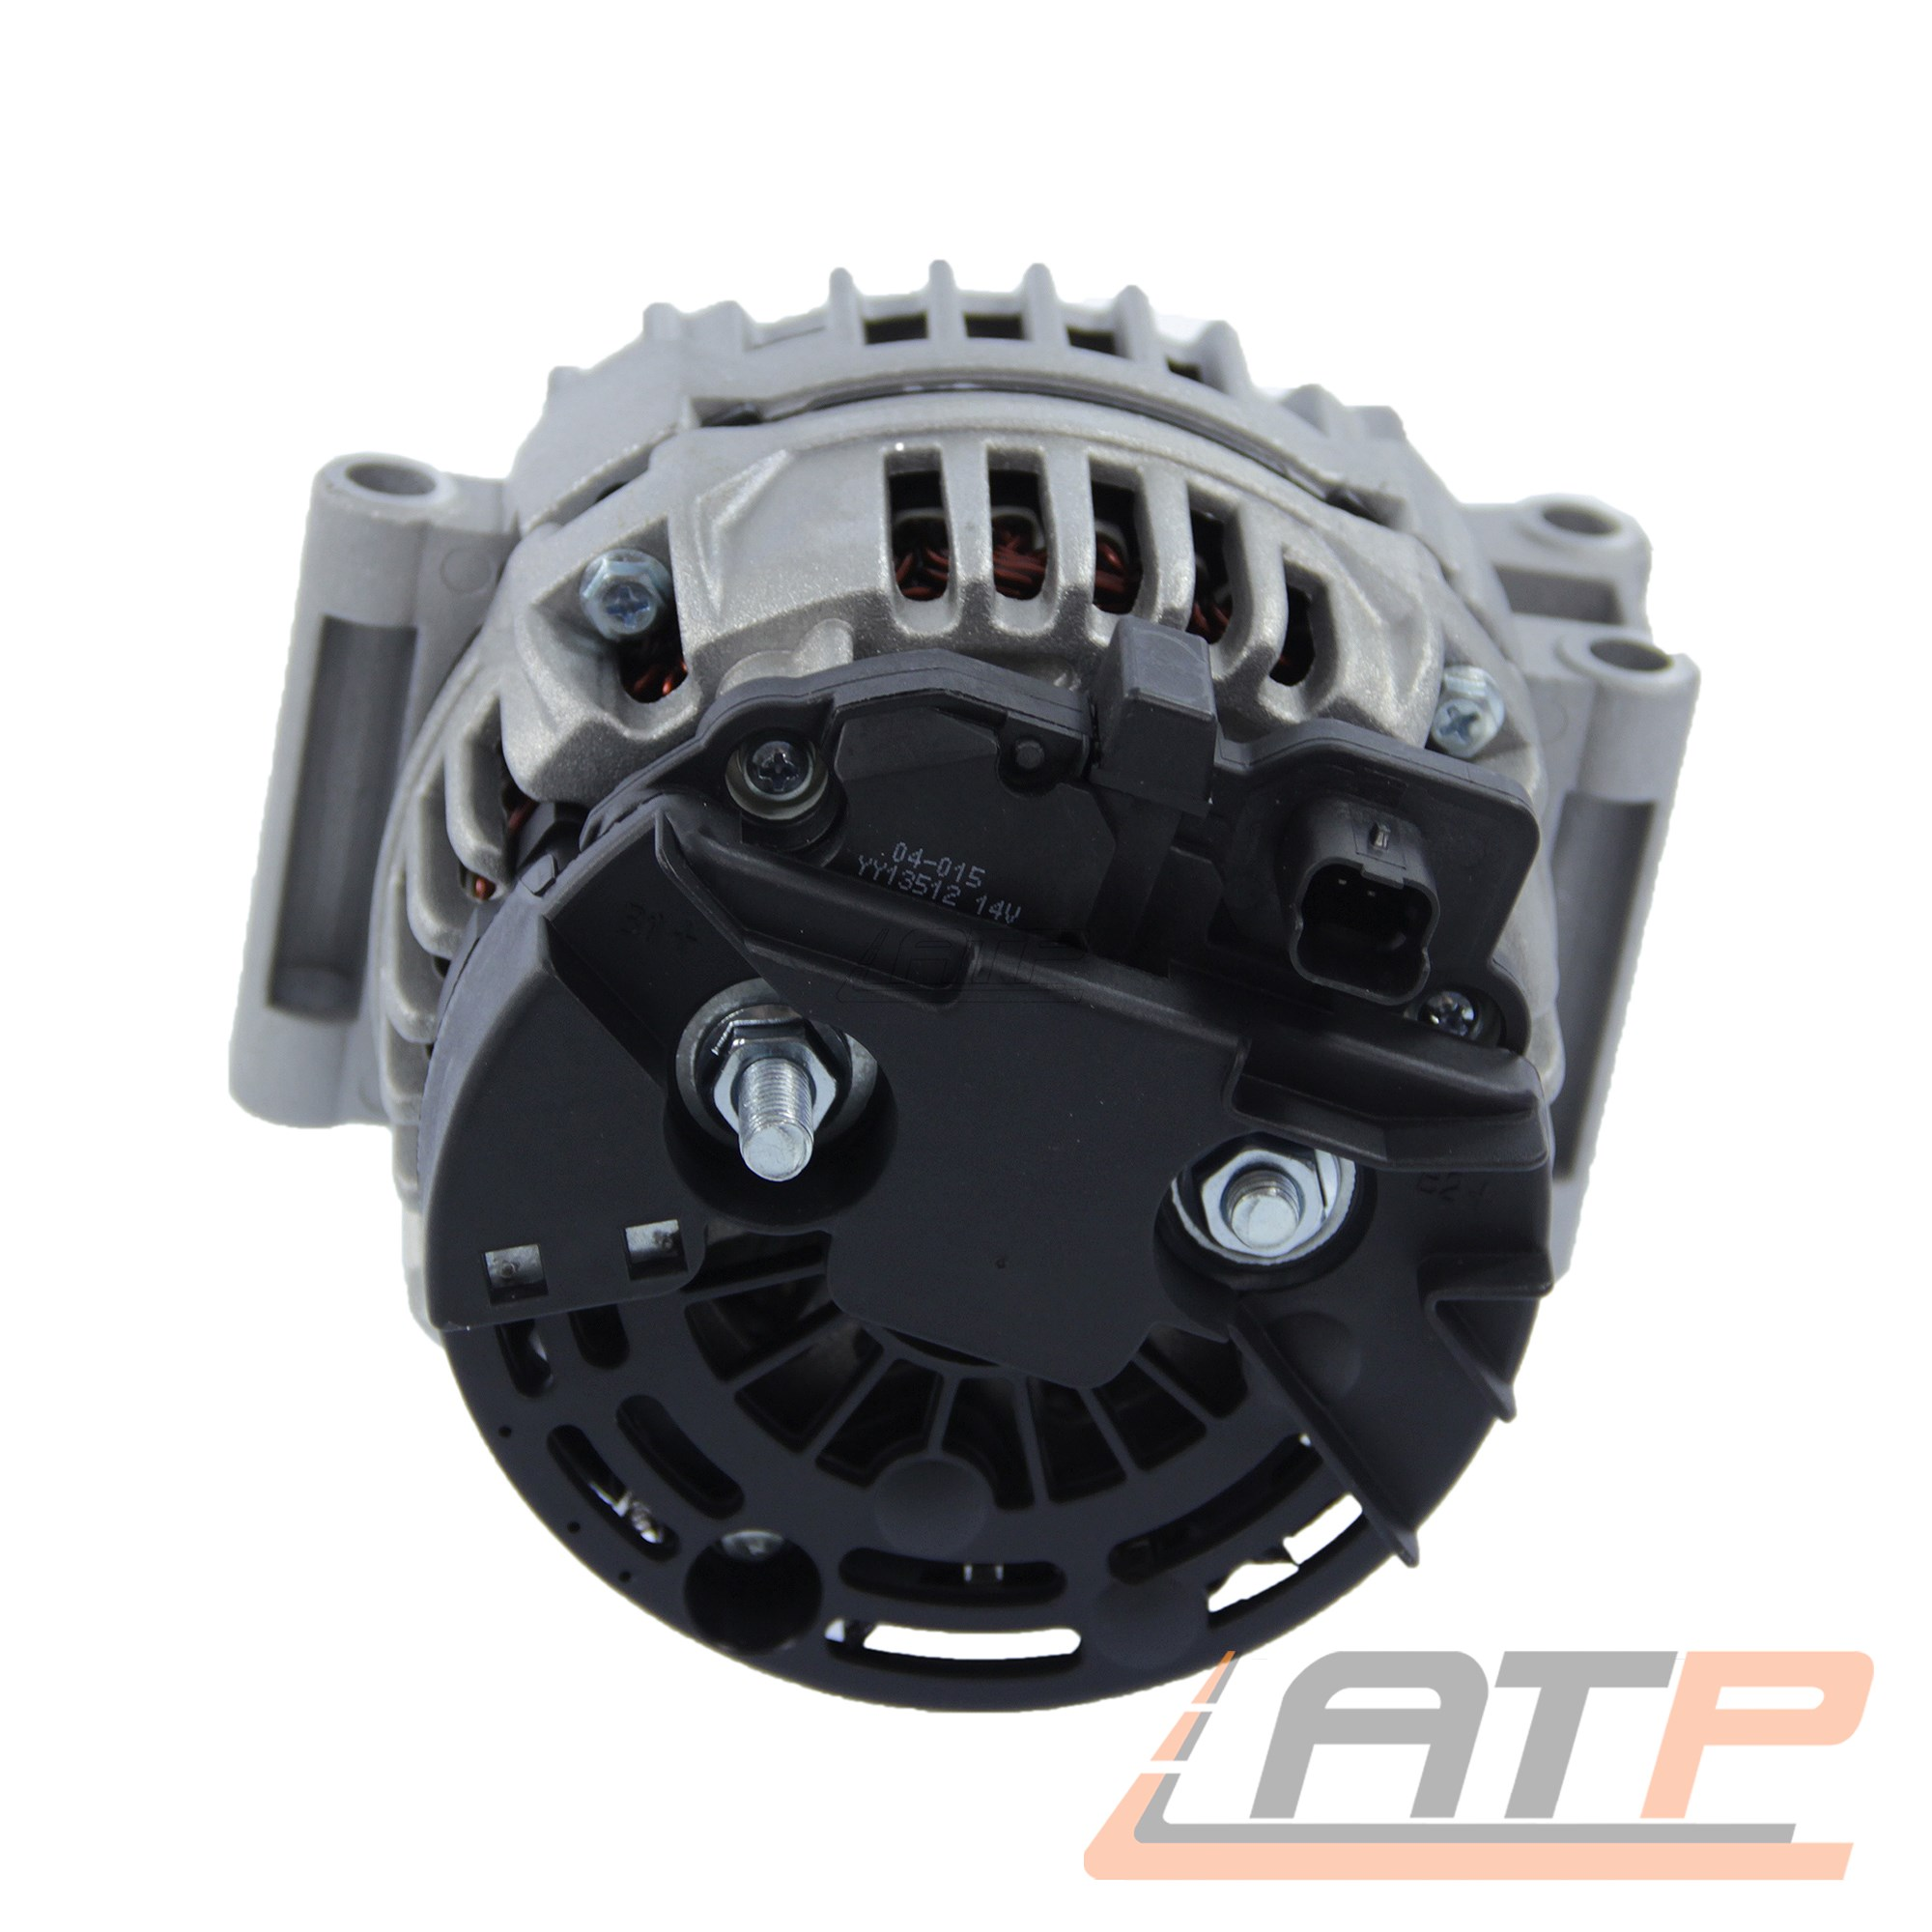 LICHTMASCHINE GENERATOR 85-A RENAULT MEGANE 1 1.4 1.6 96-03 SCENIC 1.6 98-99